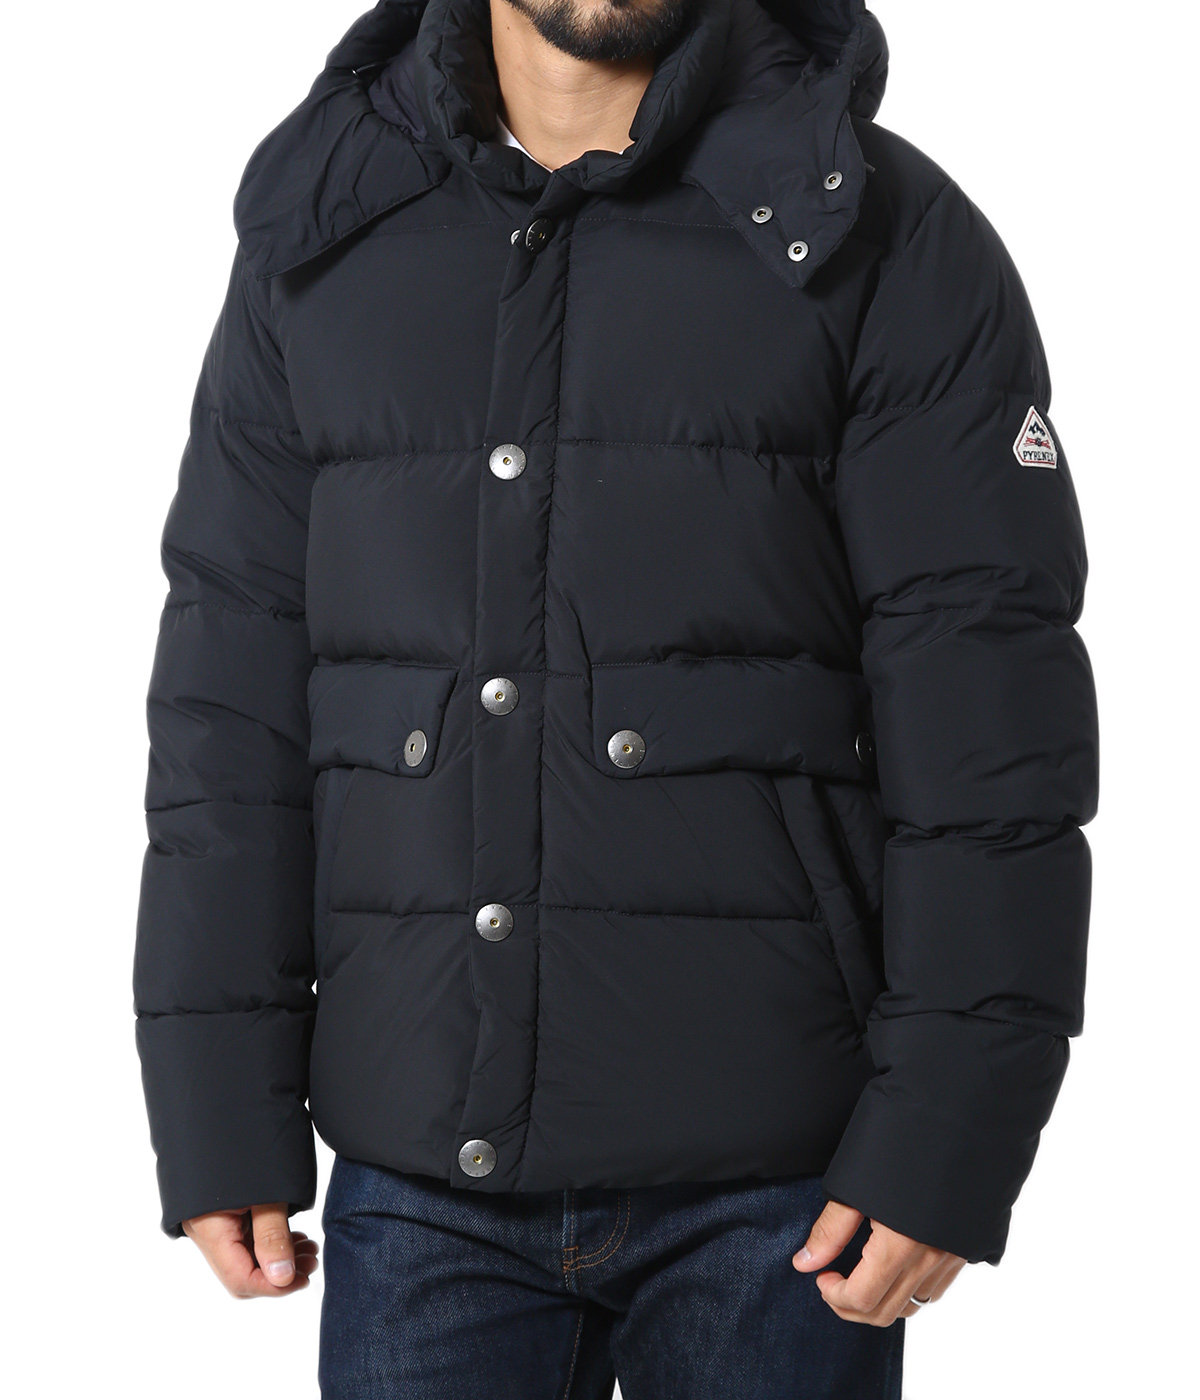 Reims Jacket -BLACK-